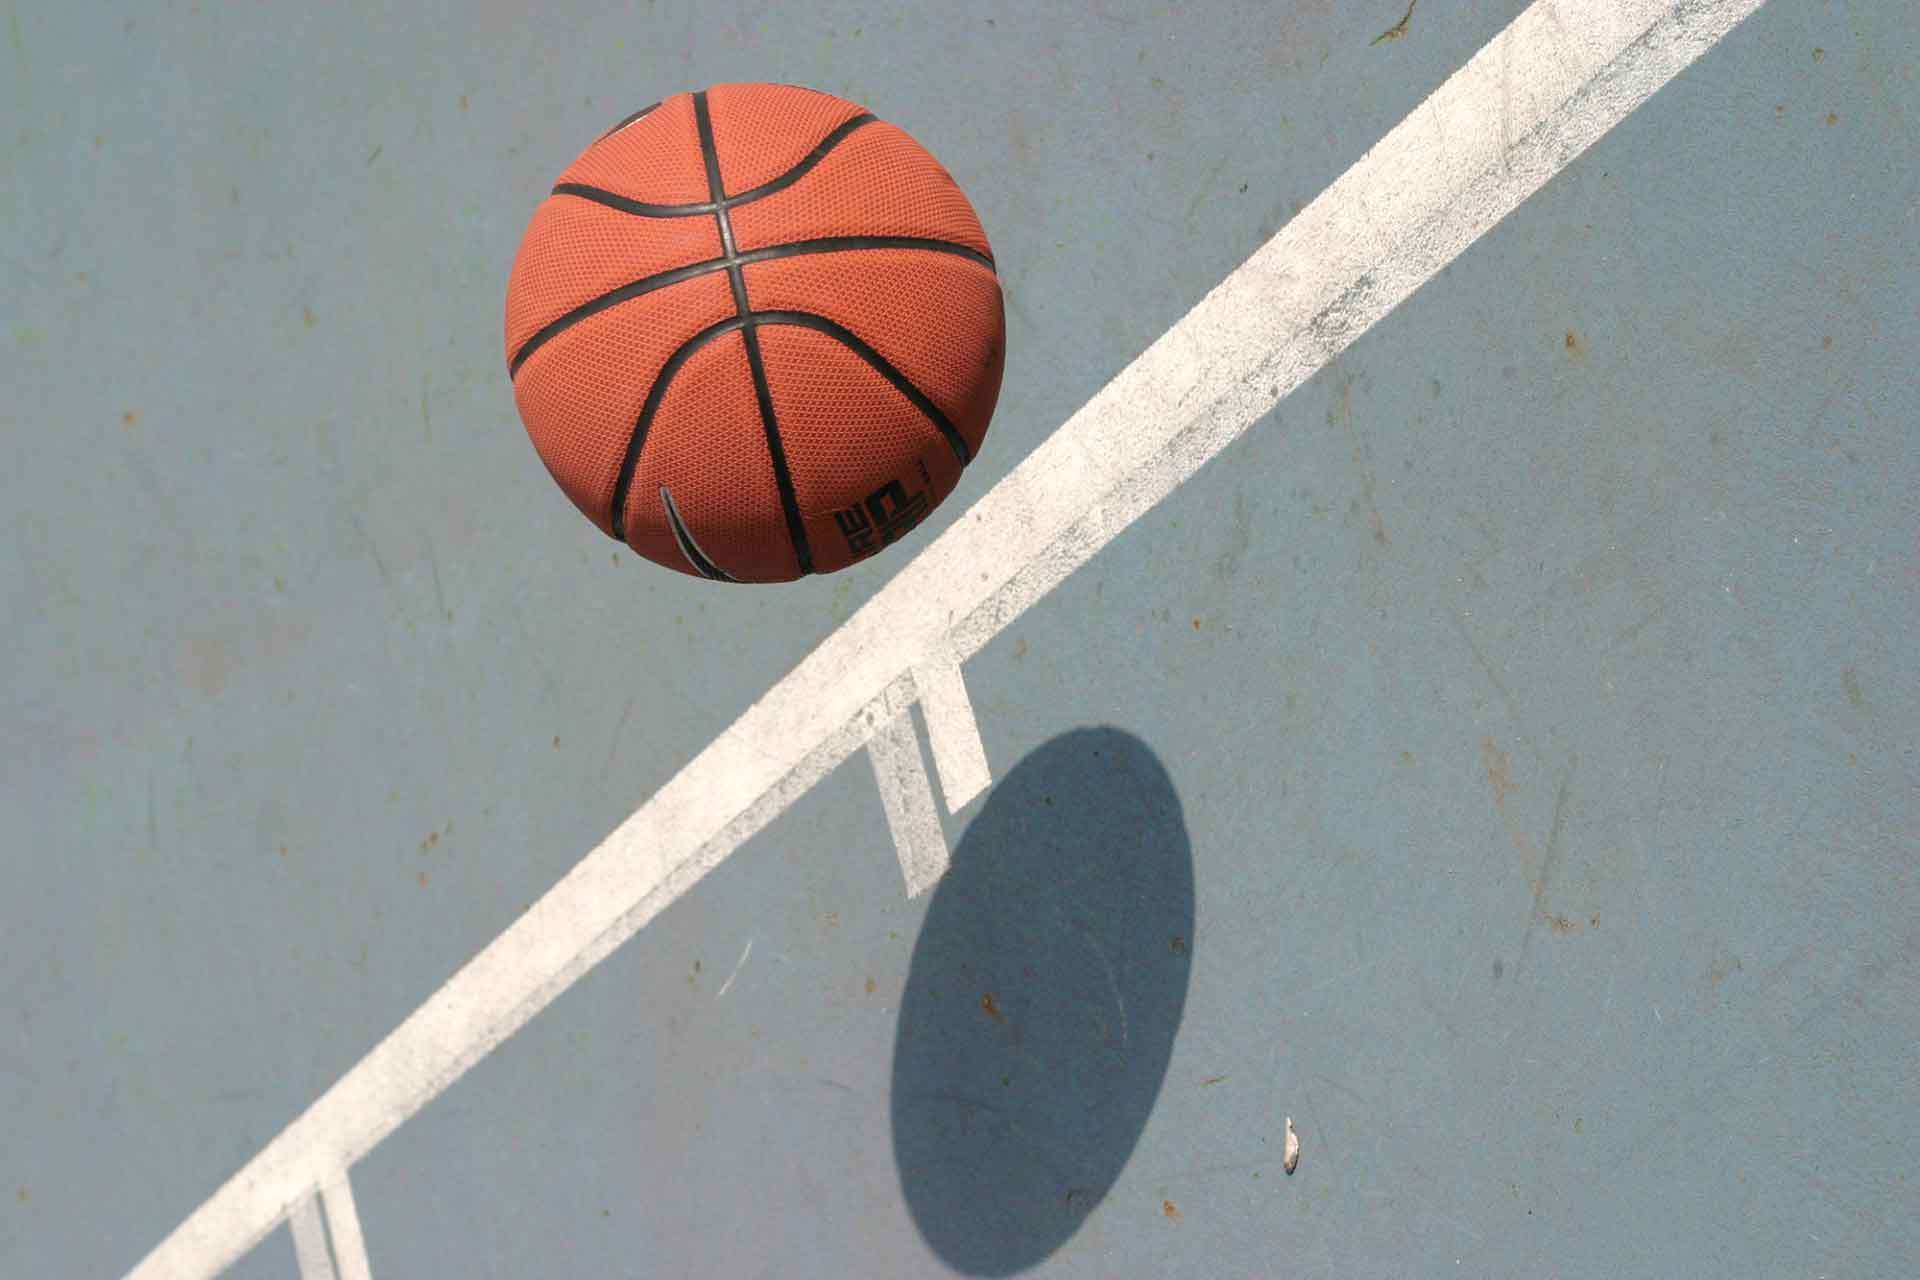 A photo of a basketball bouncing on a basketball court